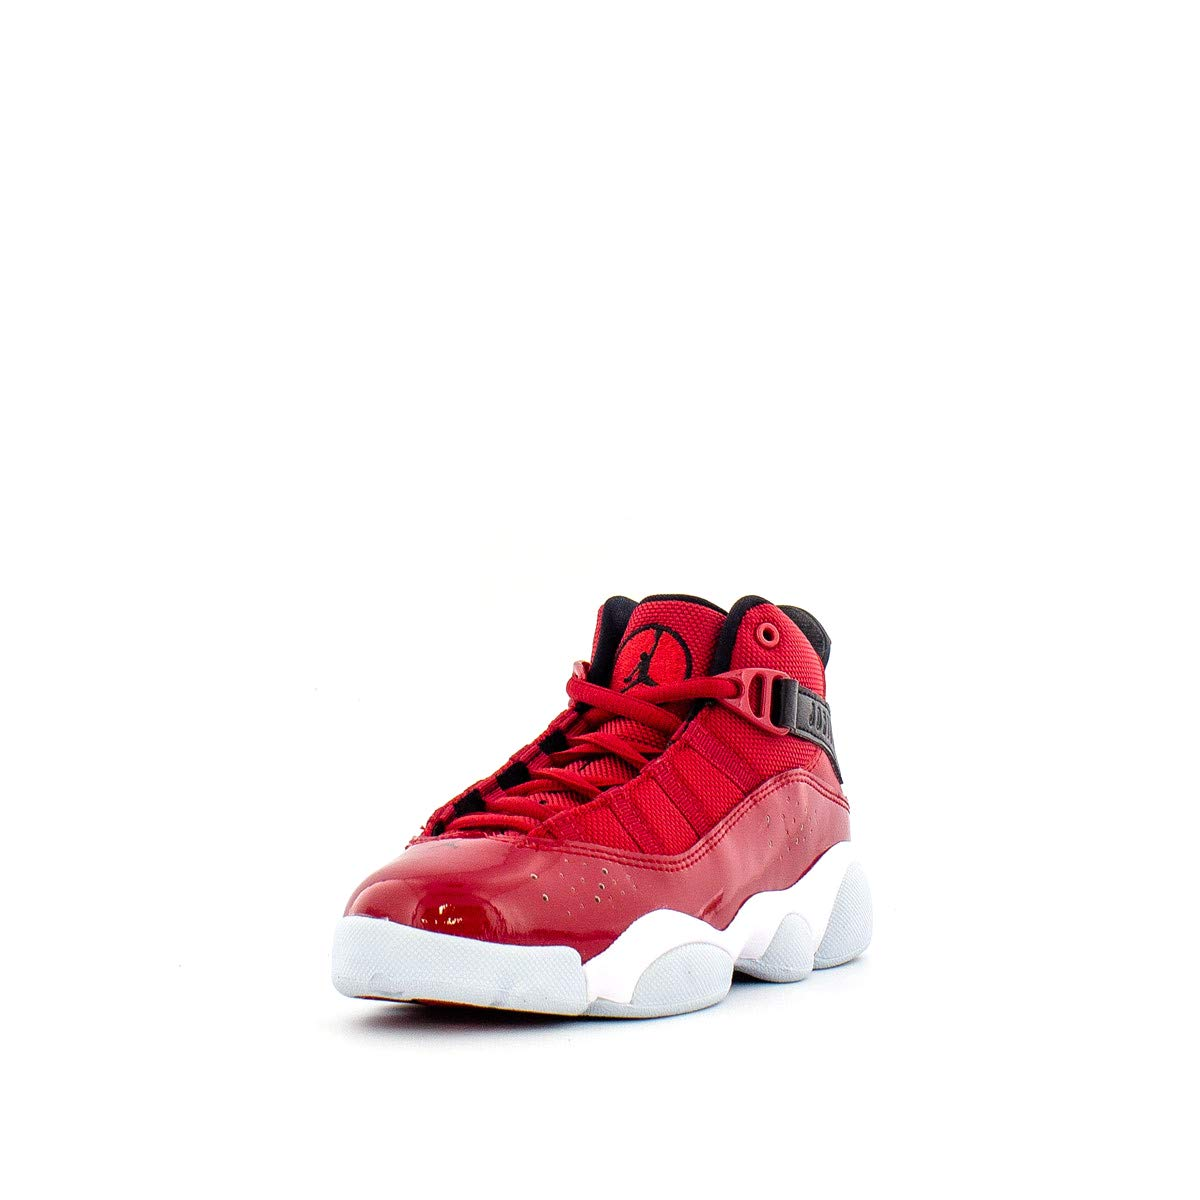 Jordan 6 Rings Gym Red/Black-White (PS) (3 M US Little Kid) by Jordan (Image #1)